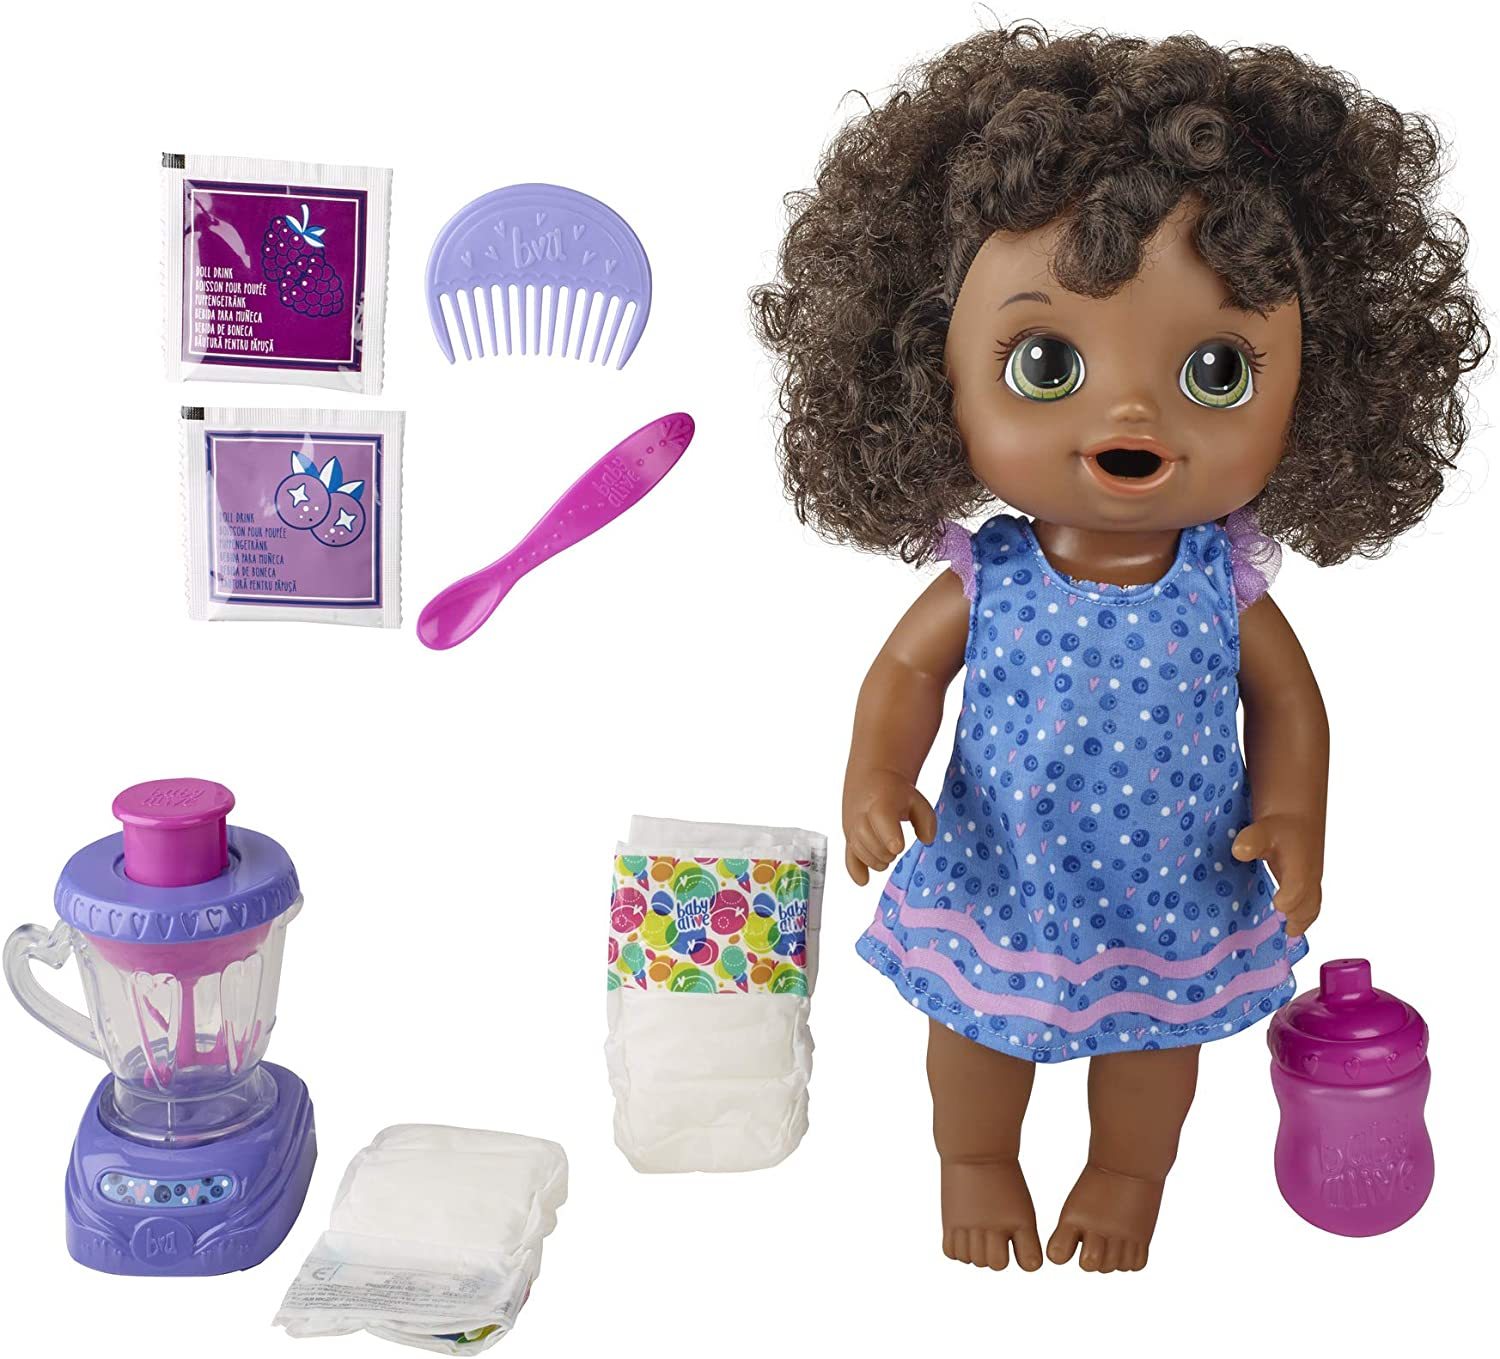 Baby Alive Magical Mixer Baby Doll Berry Shake with Blender Accessories, Drinks, Wets, Eats, Black Hair Toy for Kids Ages 3 and Up